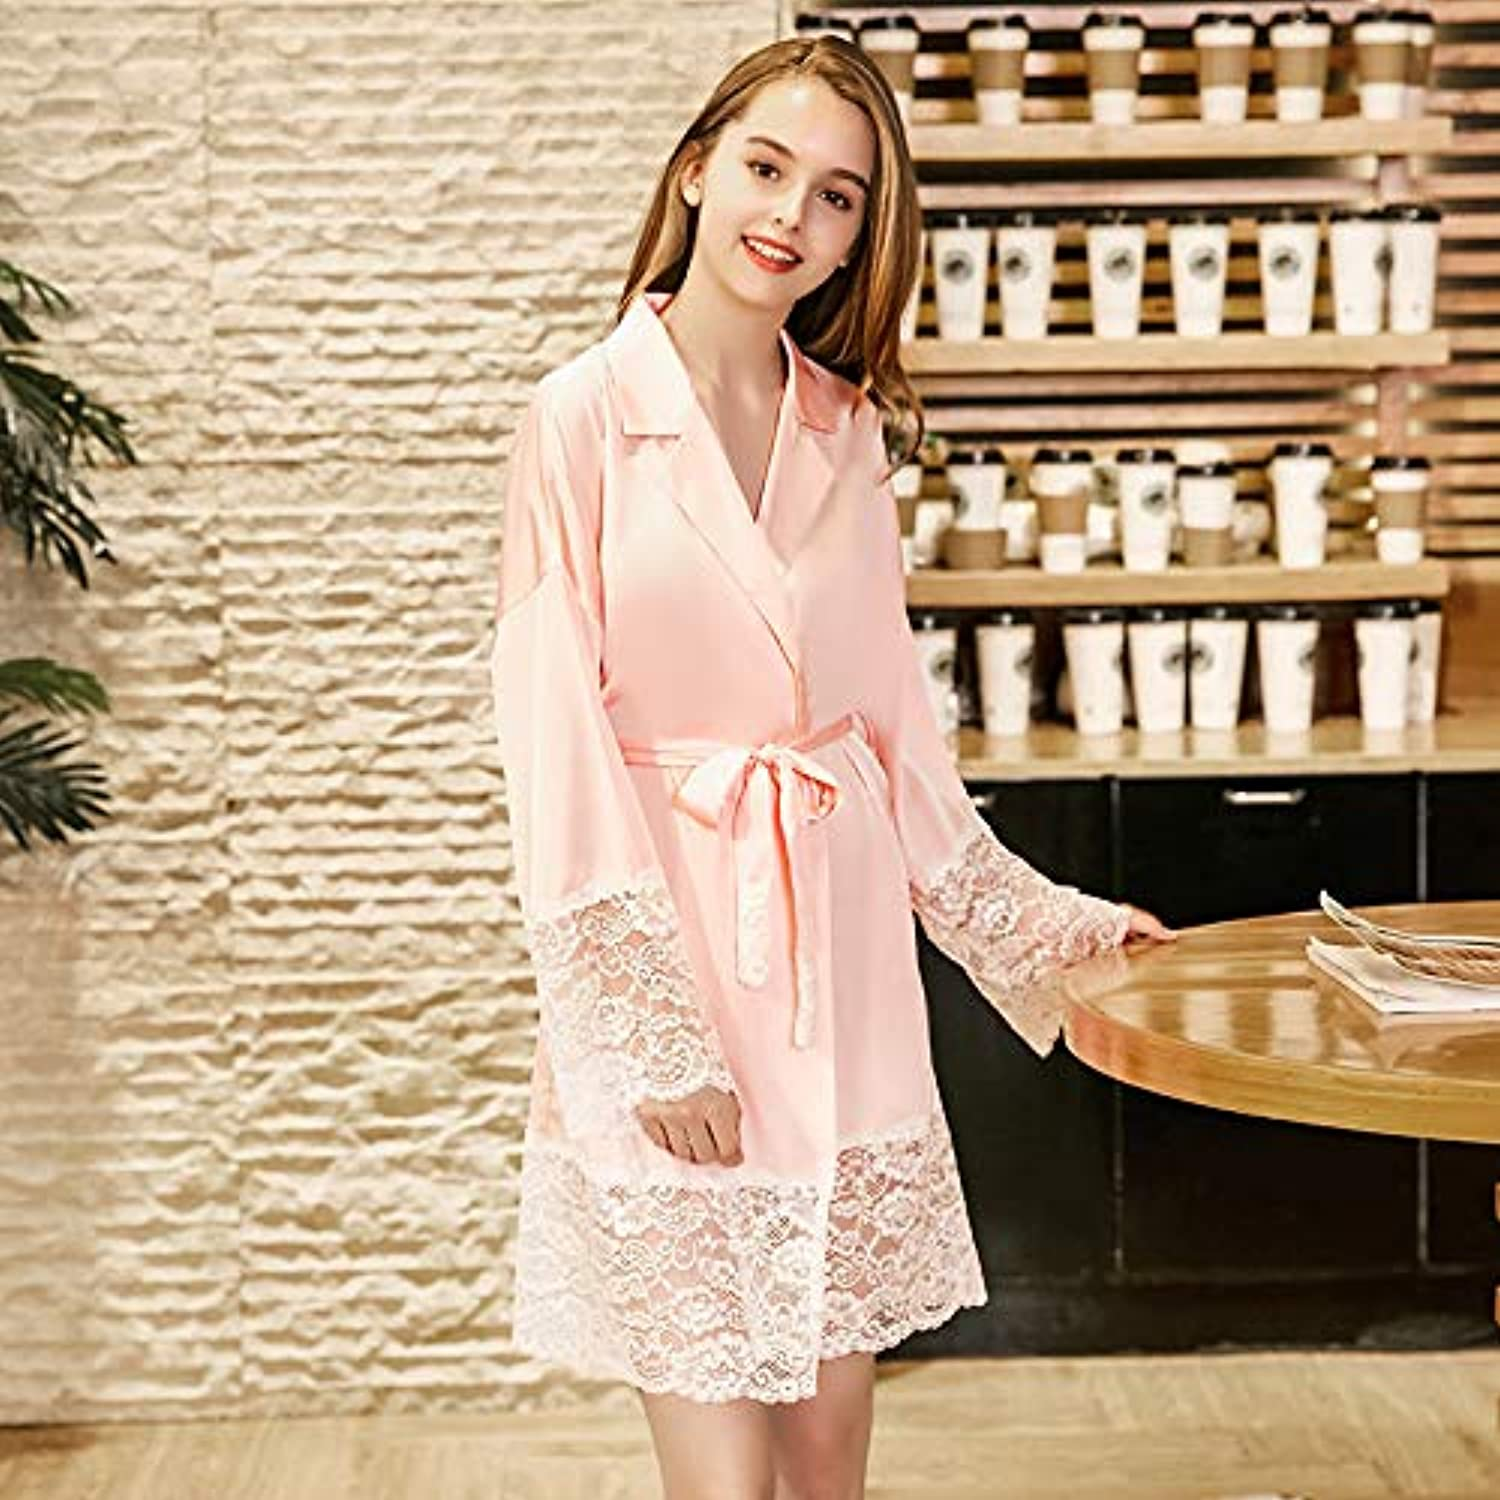 IANXI Home Simulation Silk Nightgown Women's Spring Long Sleeve Silk Homegown (color   Pink, Size   M)